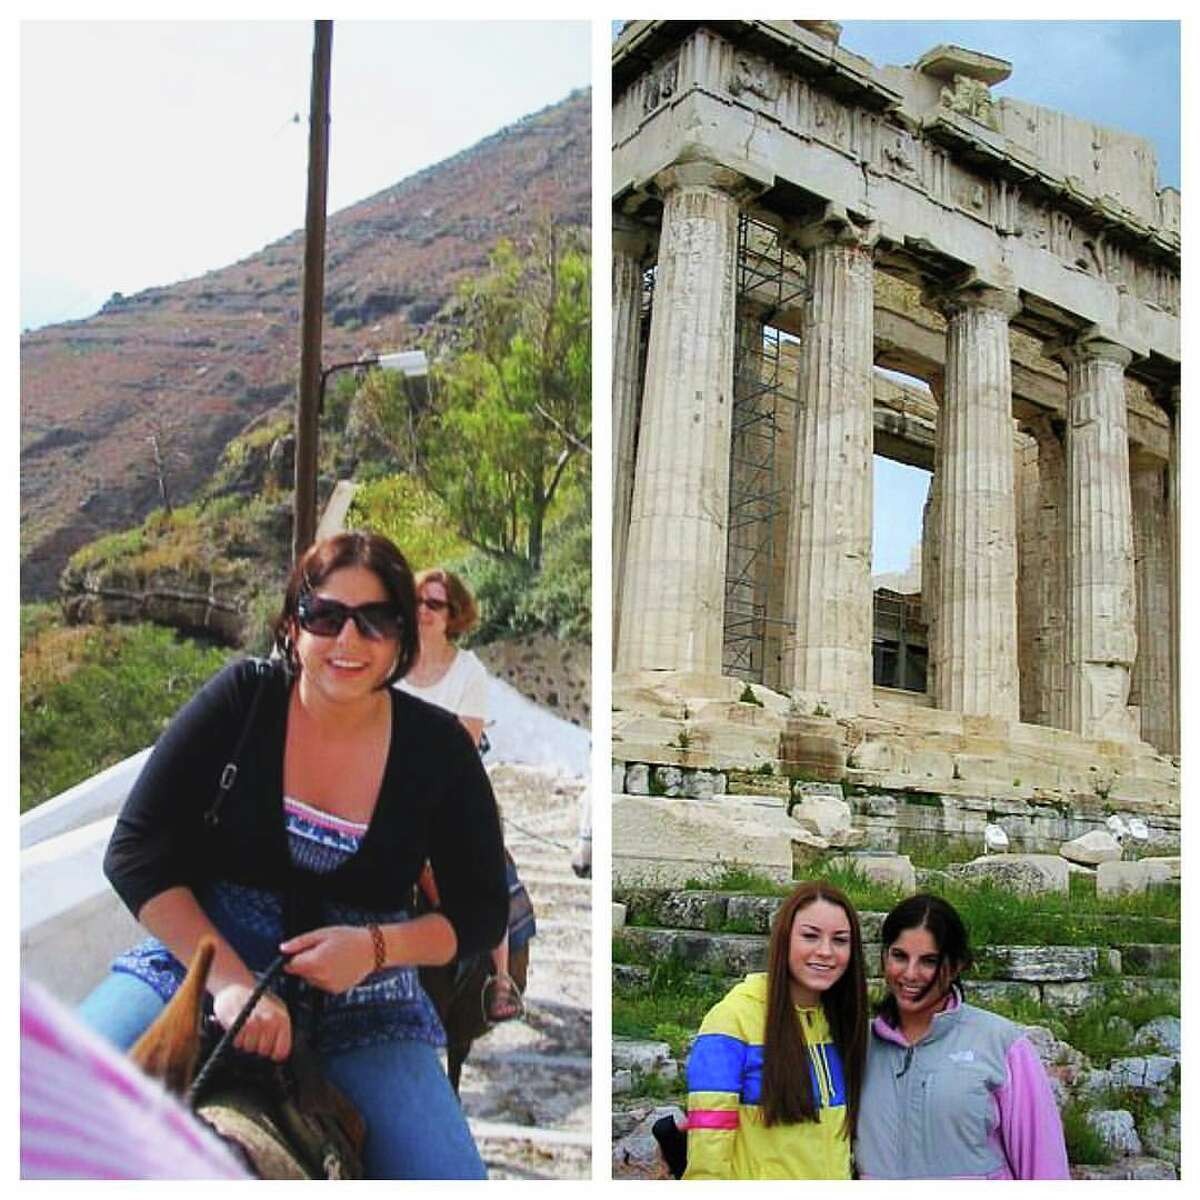 2. My first flight ever was an eight-hour overnight trek my junior year of high school when I went to Greece.